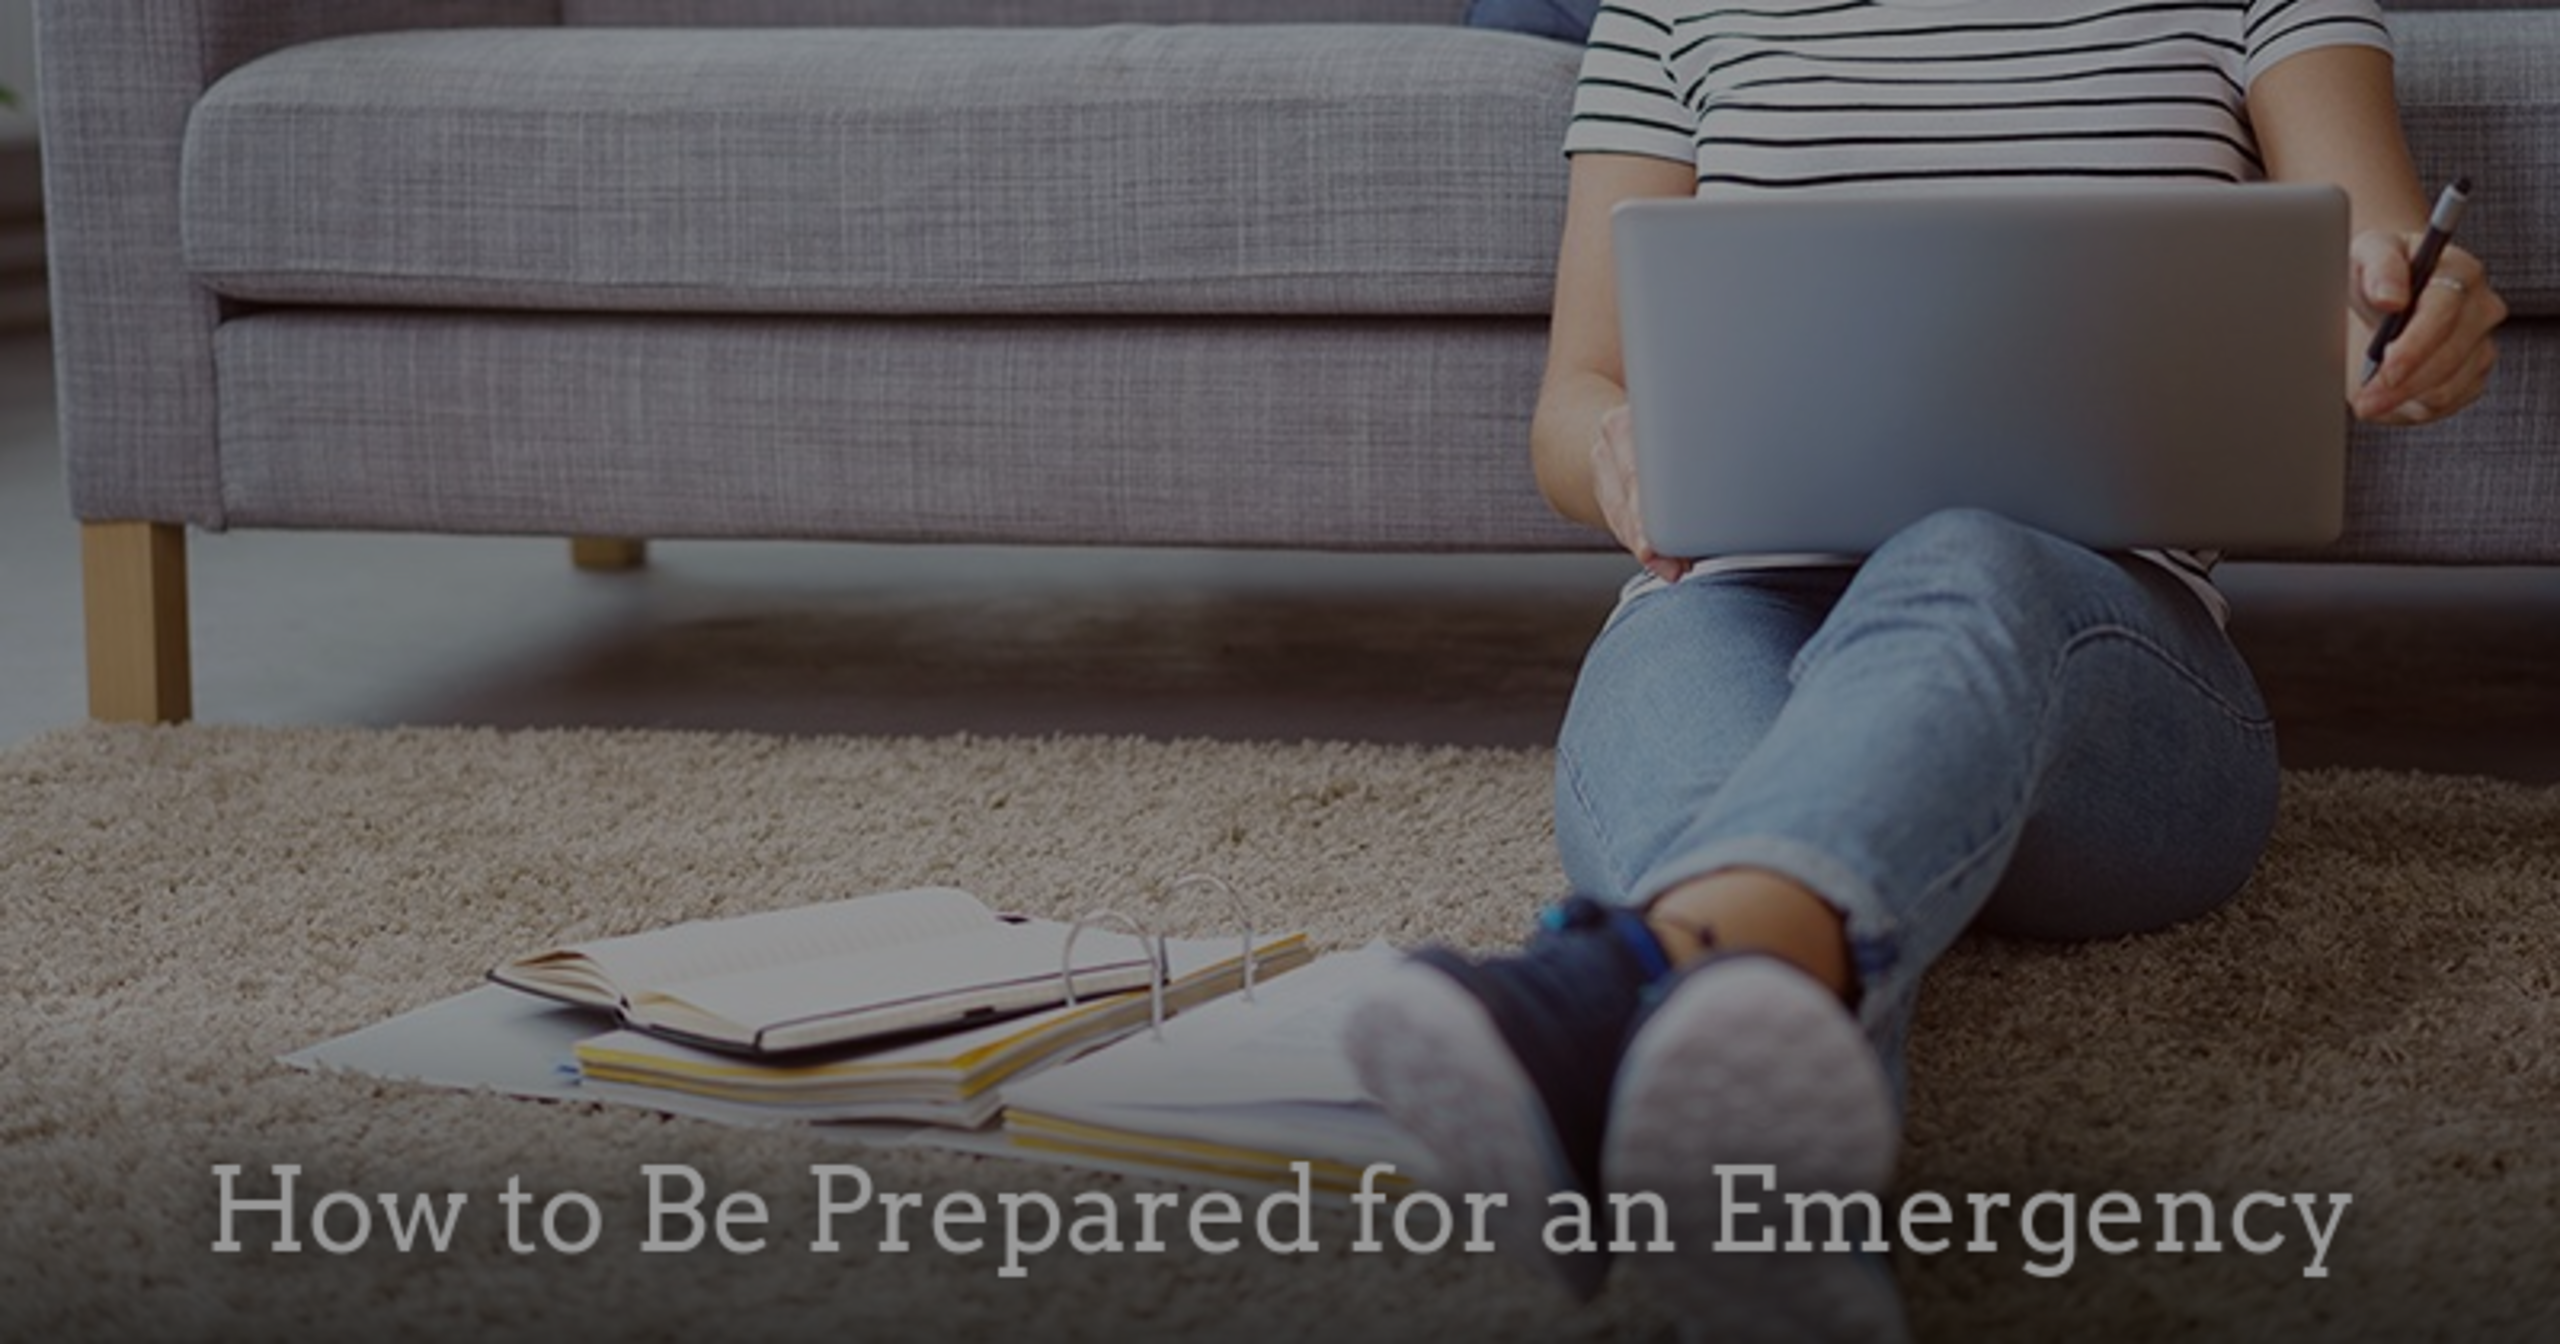 How to Be Prepared for an Emergency